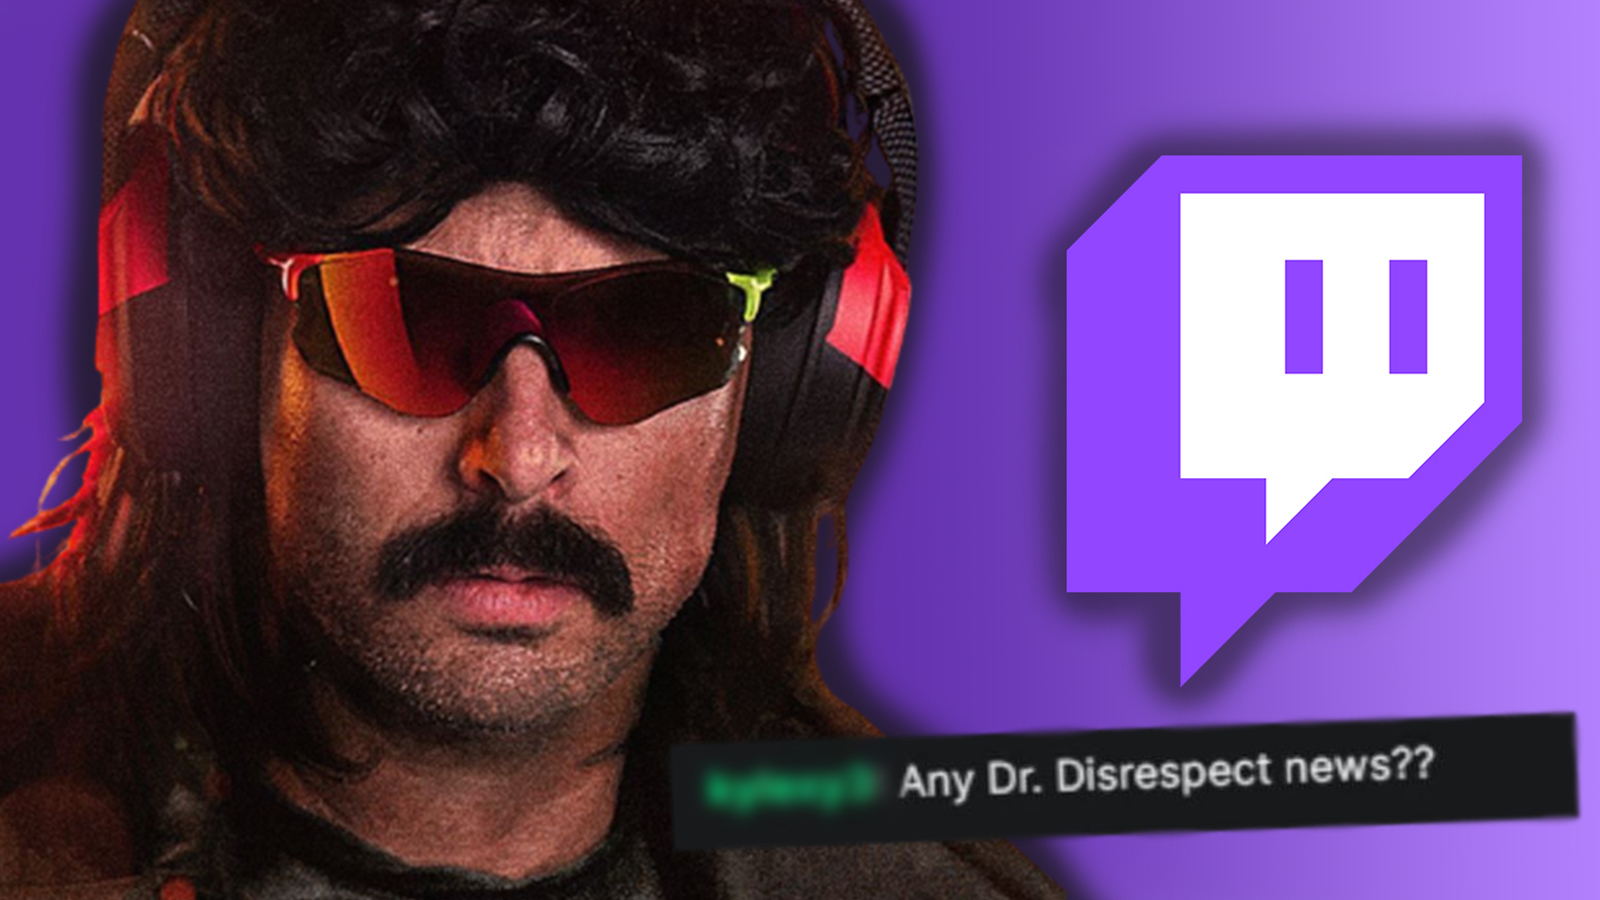 Twitch responds to Dr Disrespect ban question